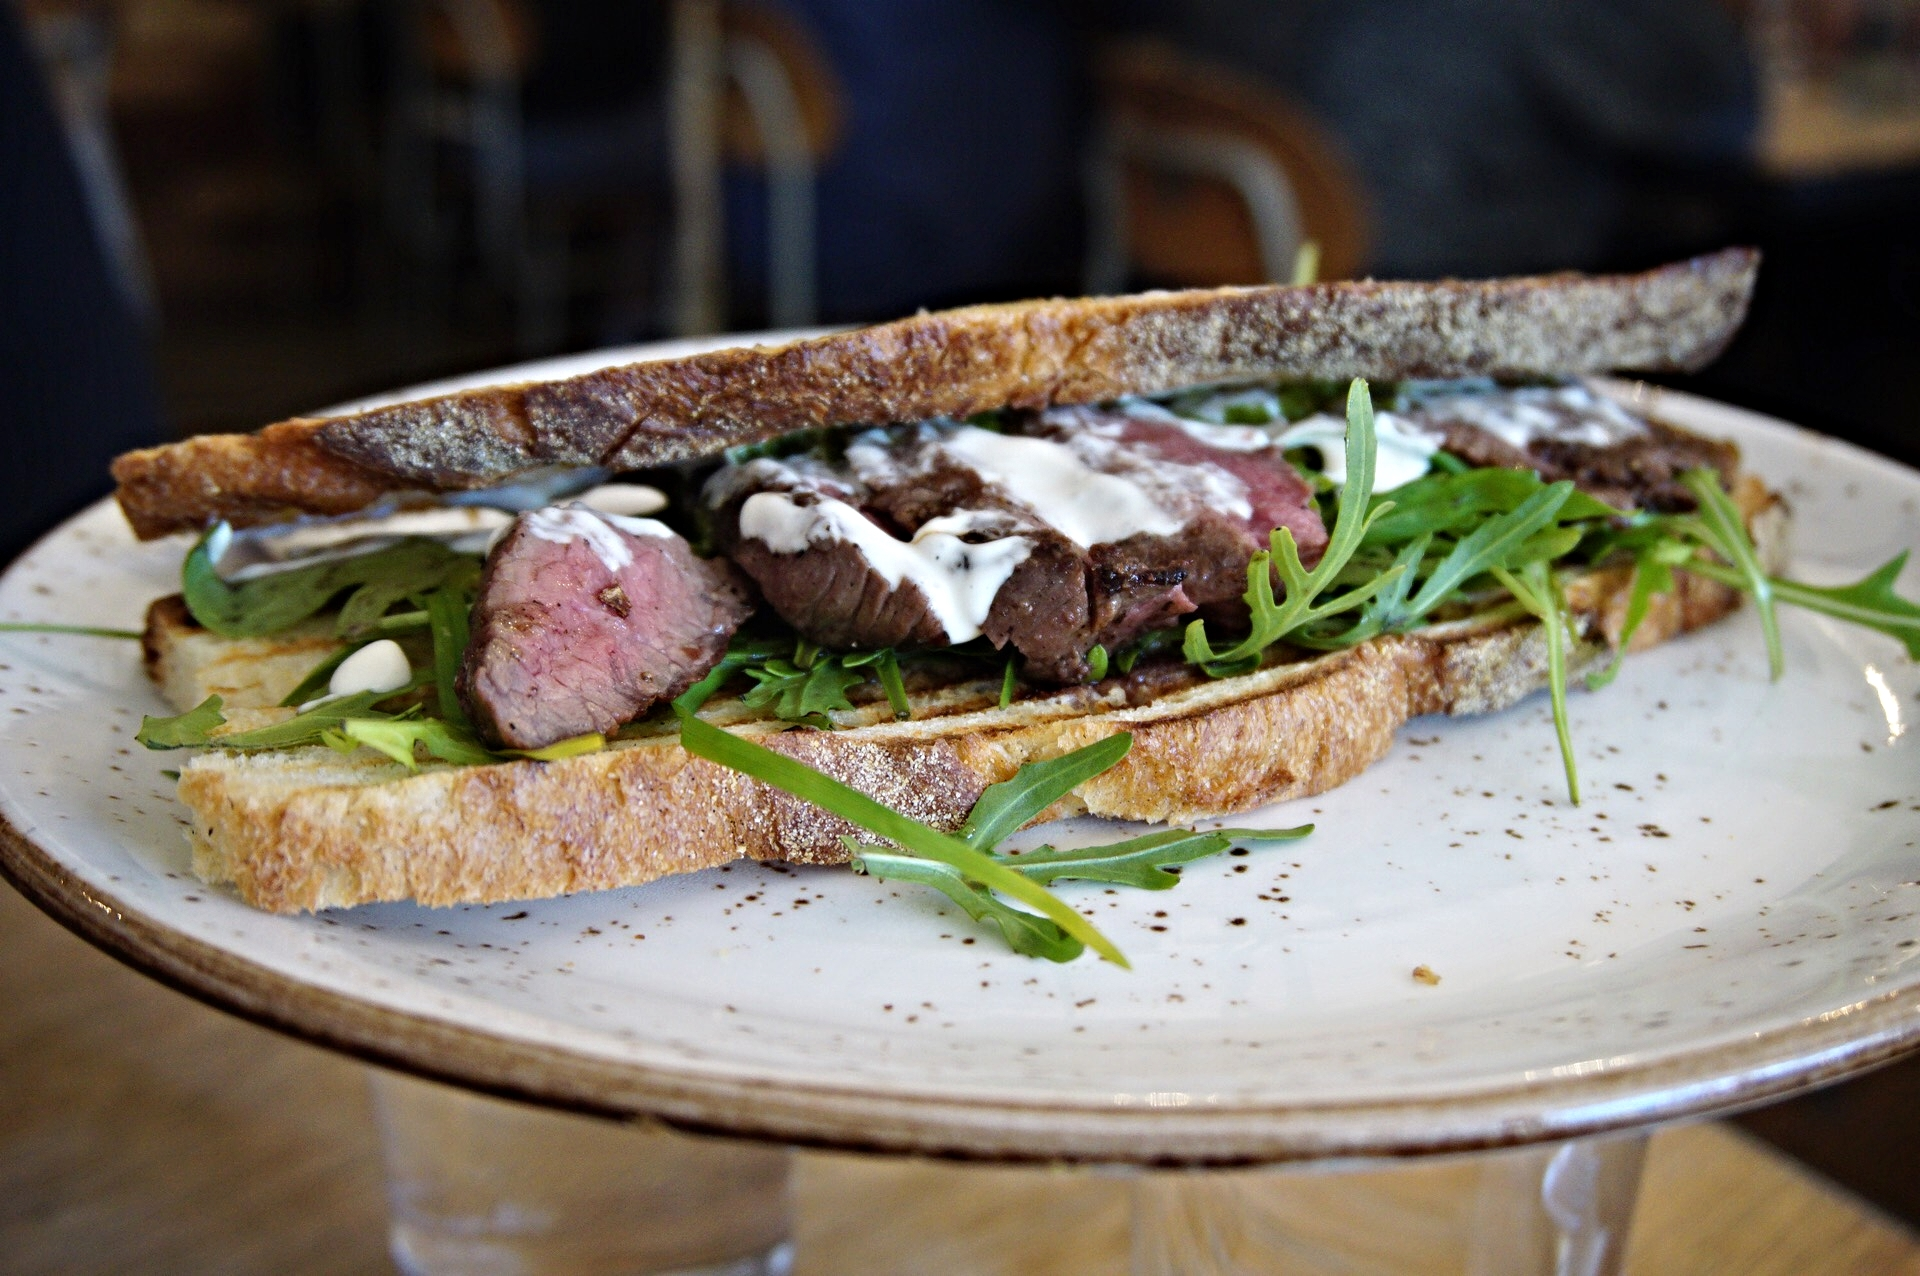 Delicious Steak Sandwich